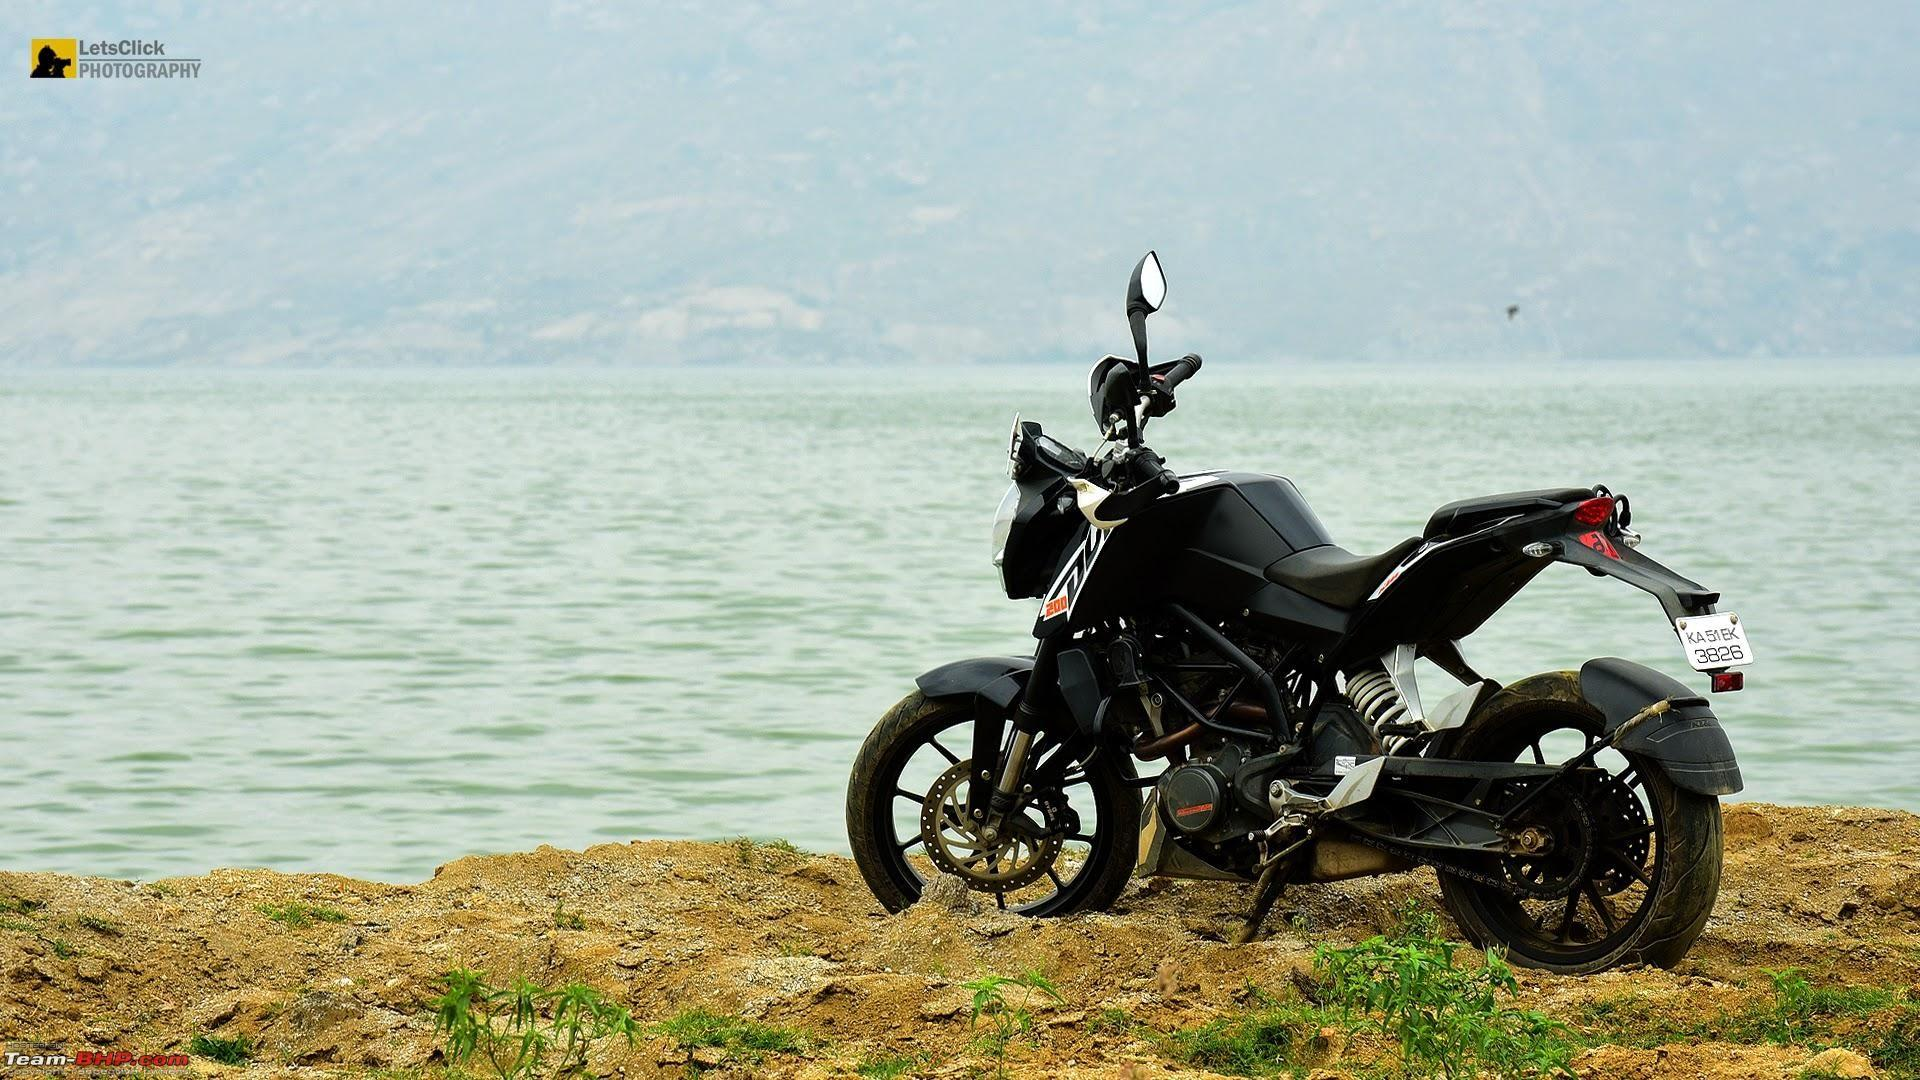 KTM 200 Duke Price, Mileage, Specifications, Colors, Top Speed and Servicing Periods